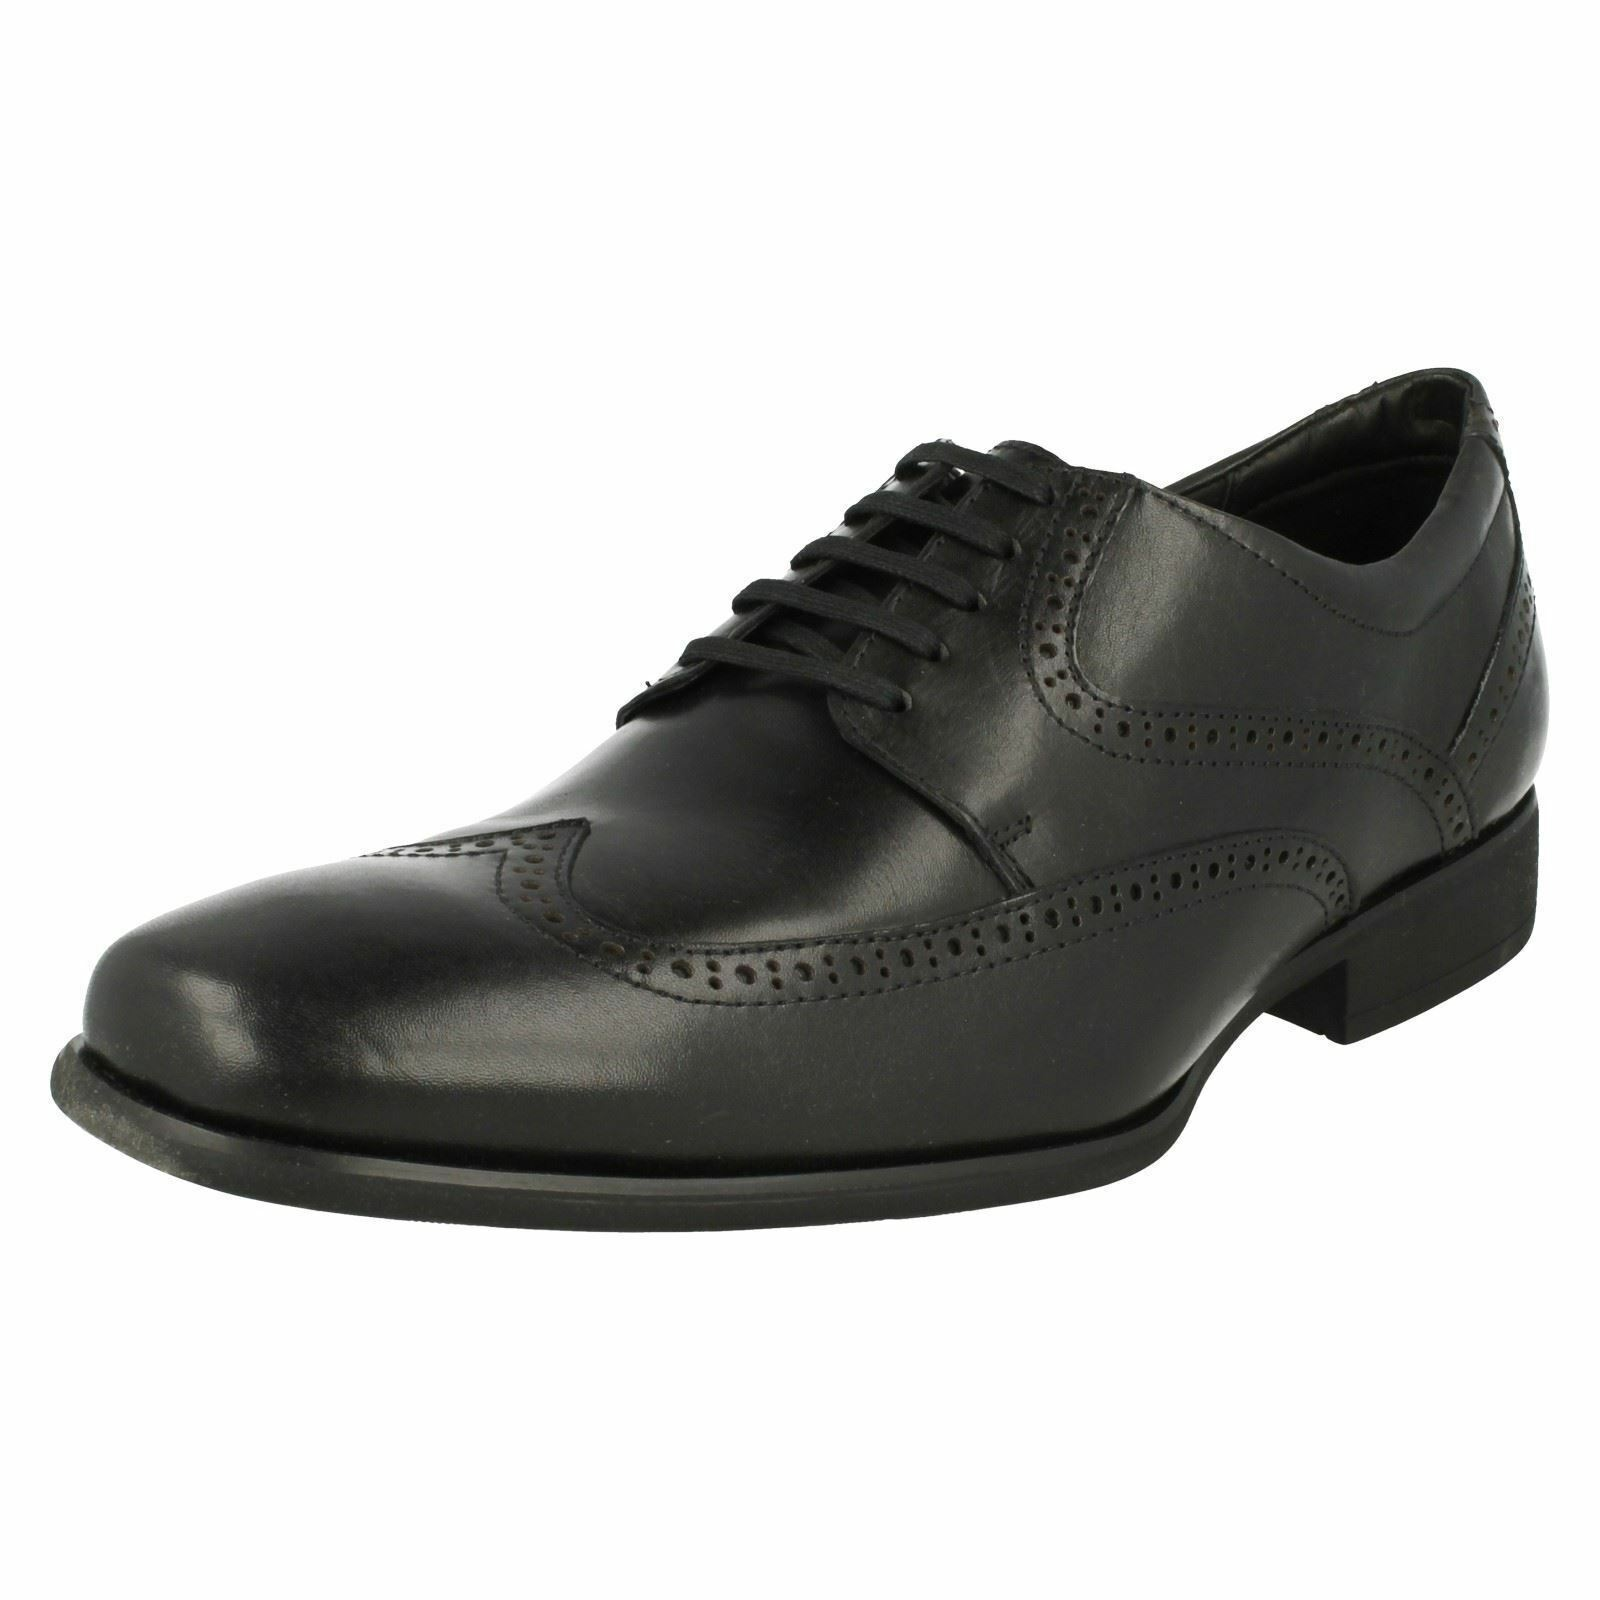 Mens Anatomic & Co Panapolis 989837 Black Leather Brogue Style Lace Up Shoes